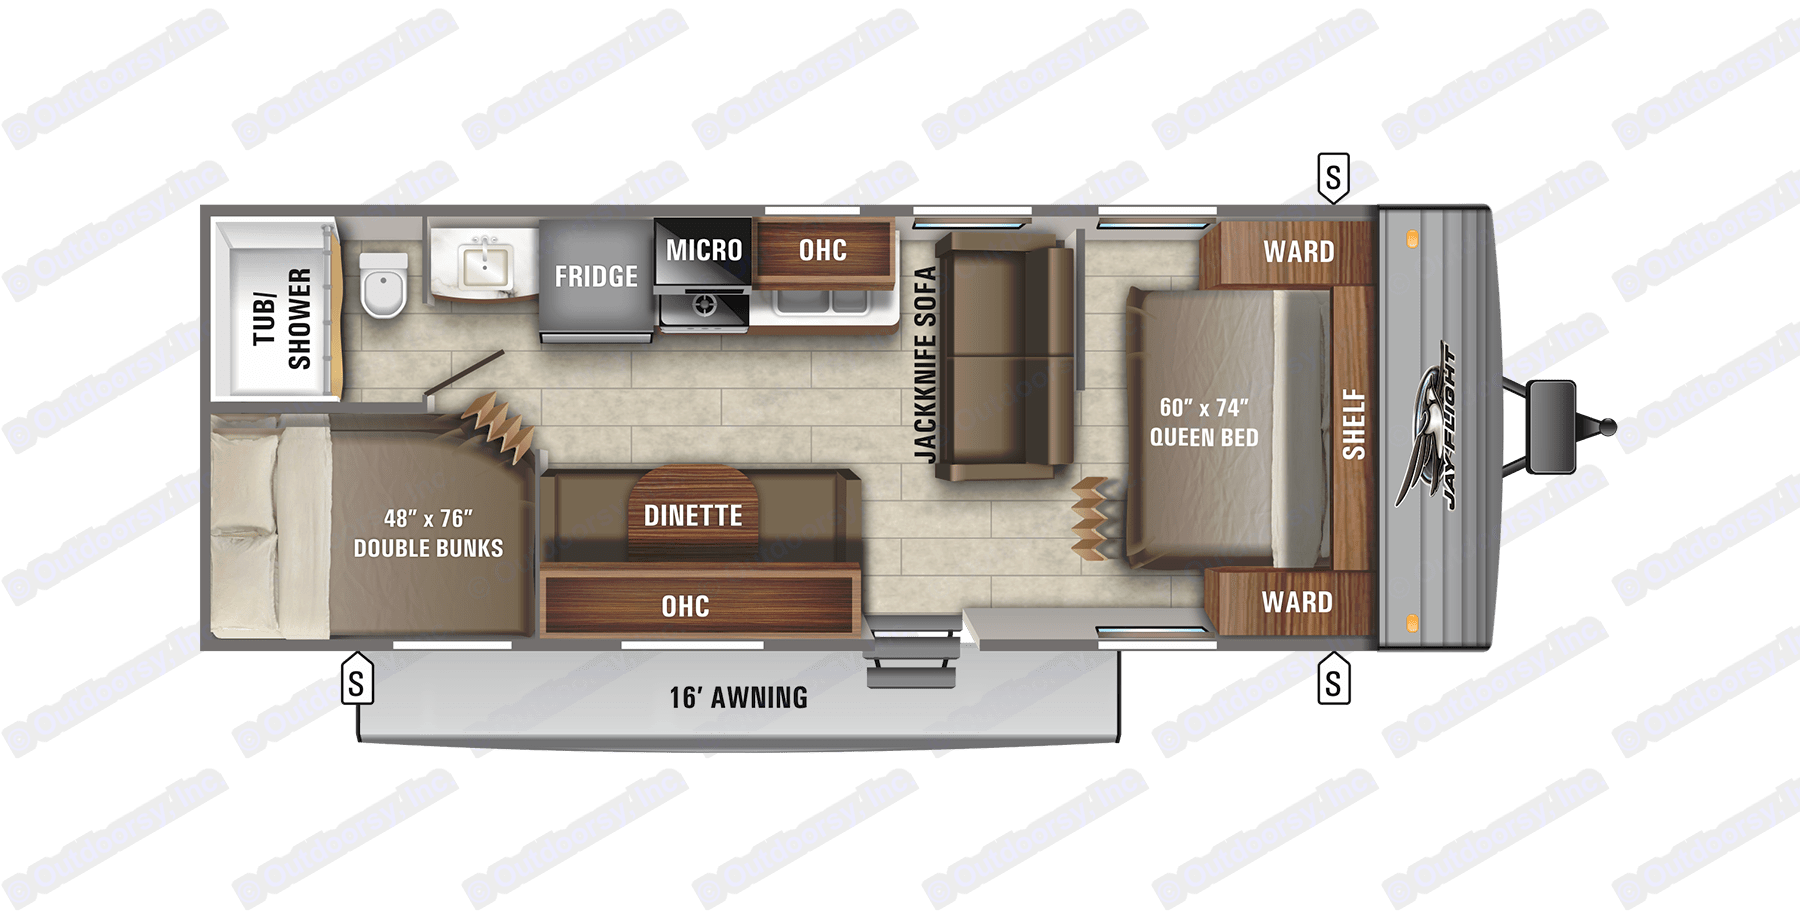 With bunk beds, queen bed, foldout couch and converting dinette, this RV floor plans ensure everyone has a place to rest.. Jayco Other 2021